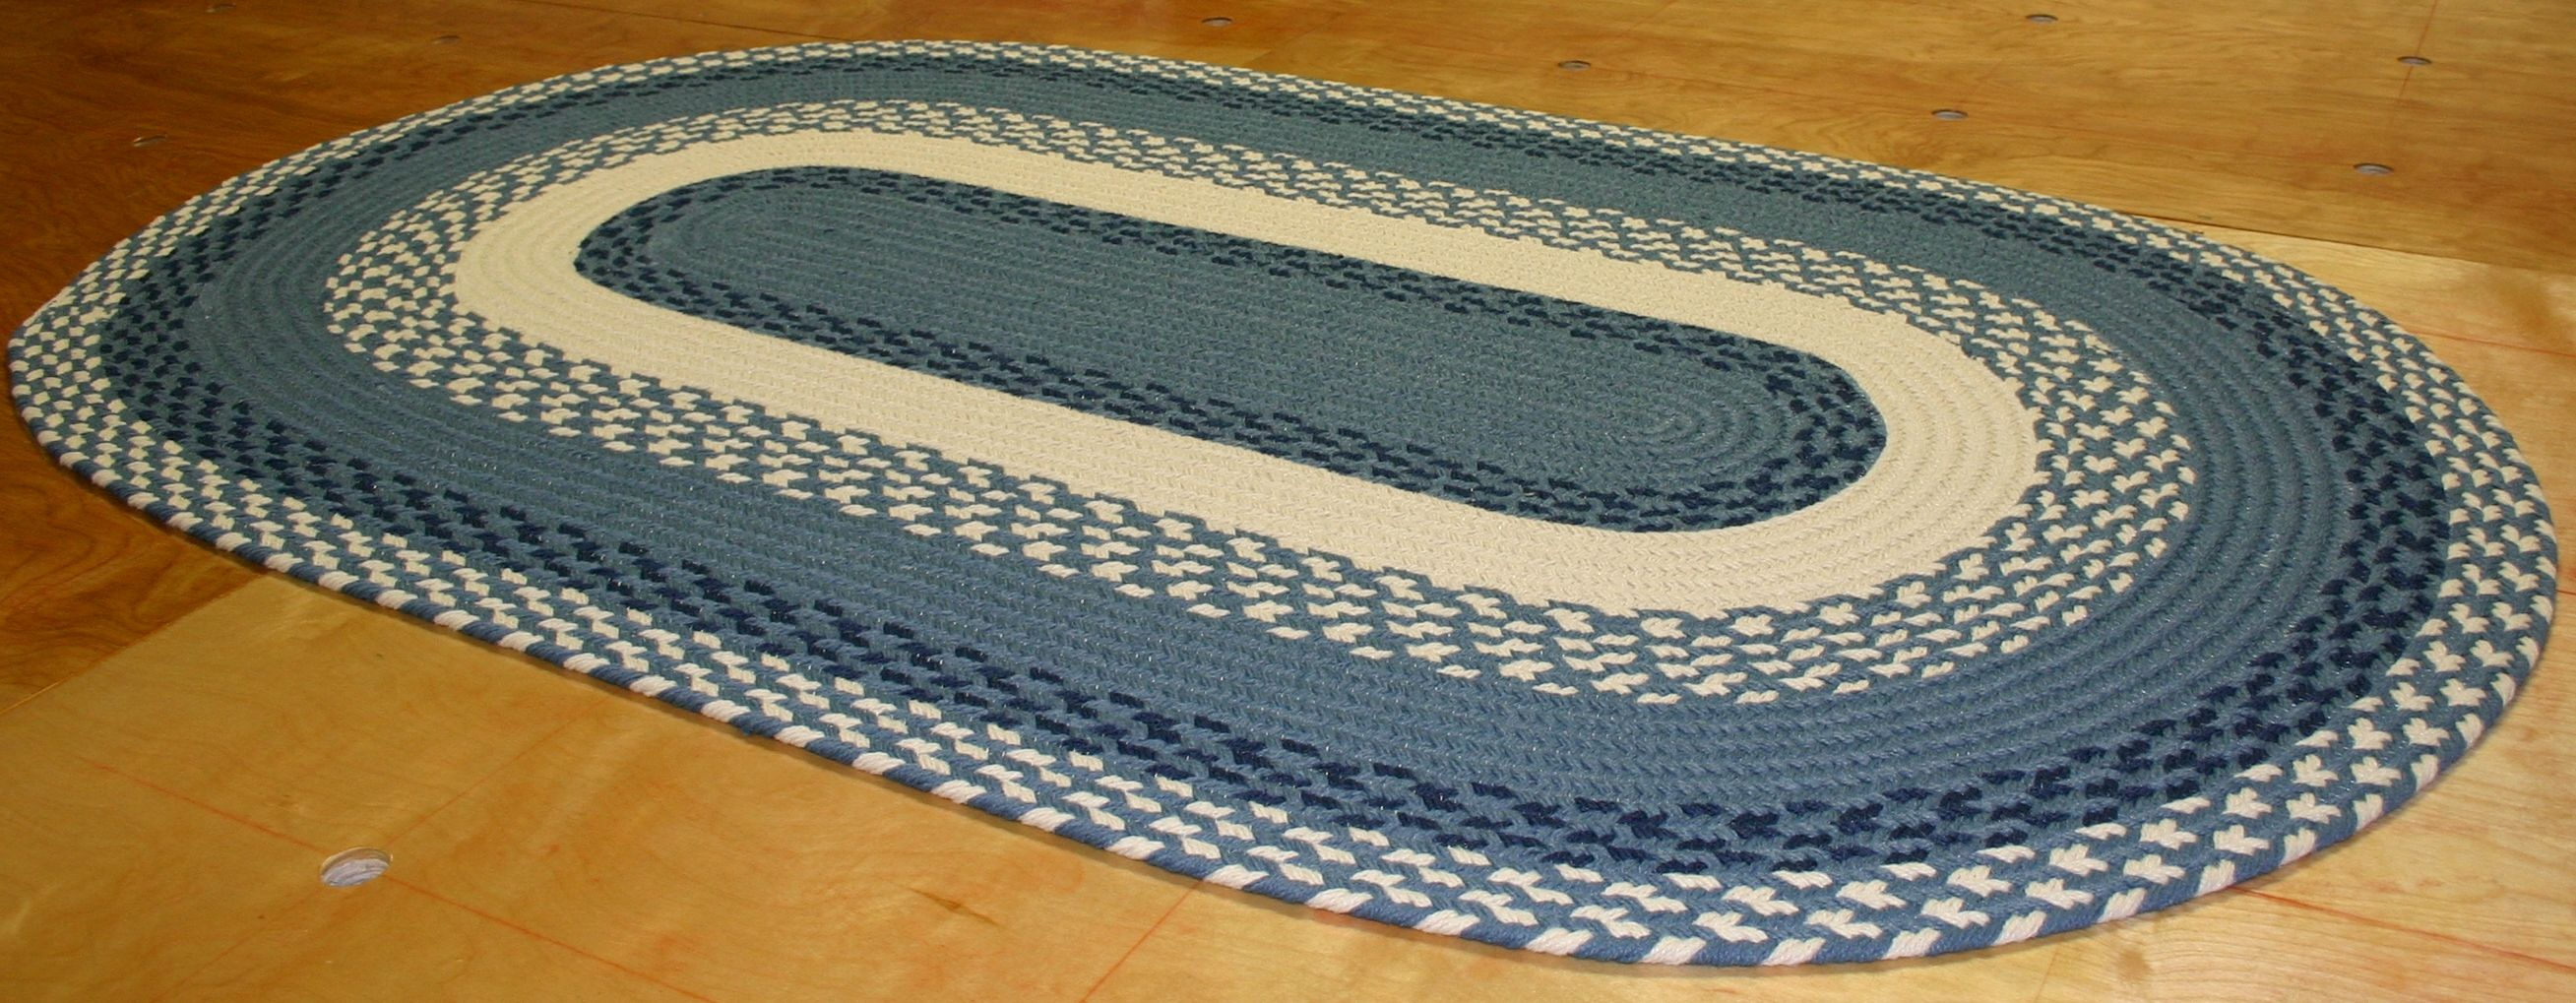 Custom Rug Using Navy Williamsburg Blue Cream This High Quality Braided Rug Is Made By American Workers At Our Family Owned Rugs Braided Rugs Custom Rugs